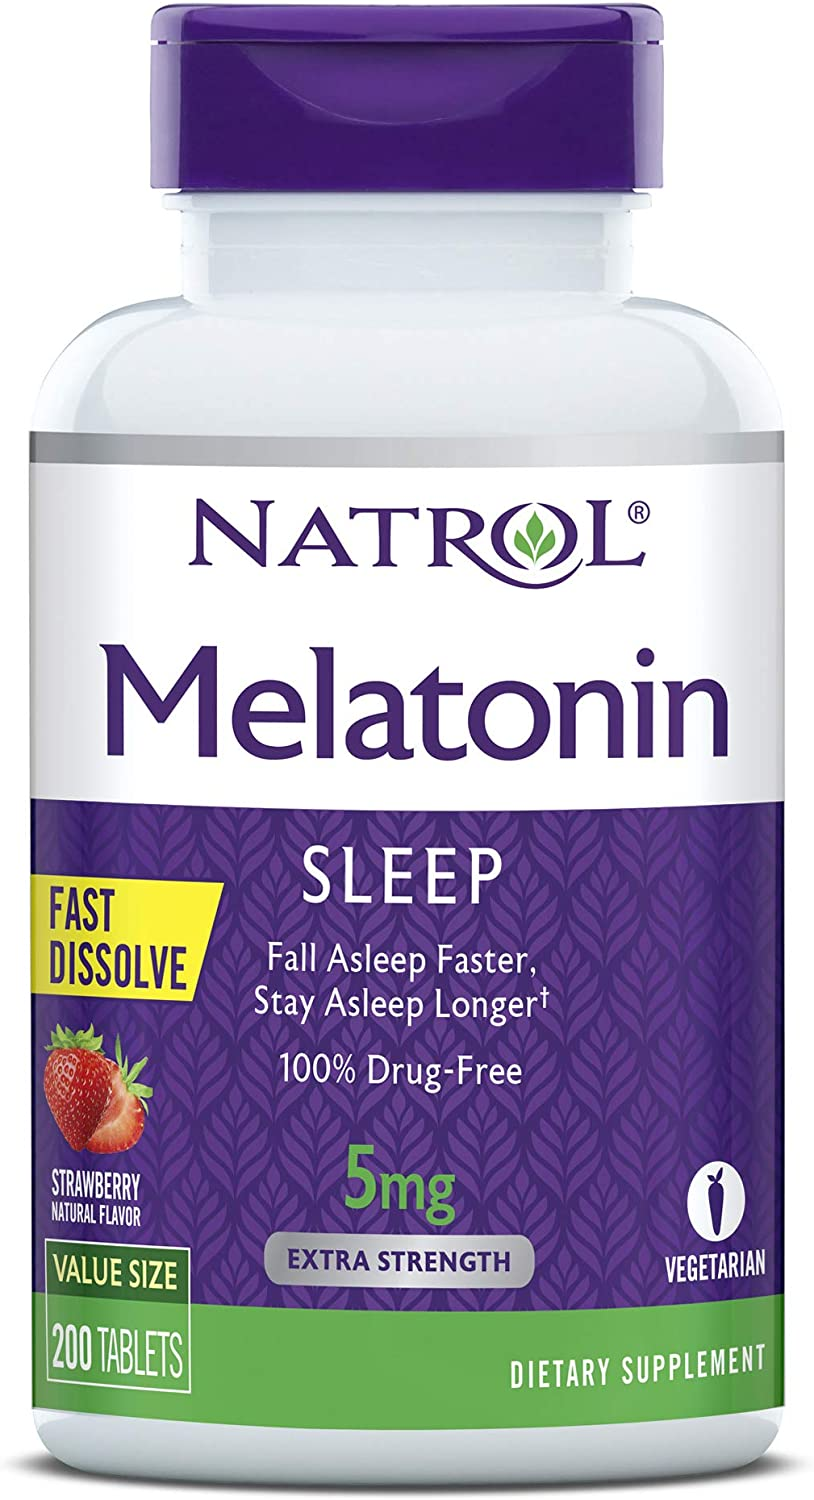 Natrol Melatonin Fast Dissolve Tablets, Helps You Fall Asleep Faster, Stay Asleep Longer, Easy to Take, Dissolves in Mouth, Faster Absorption, Maximum Strength, Strawberry Flavor, 5mg, 200 Count